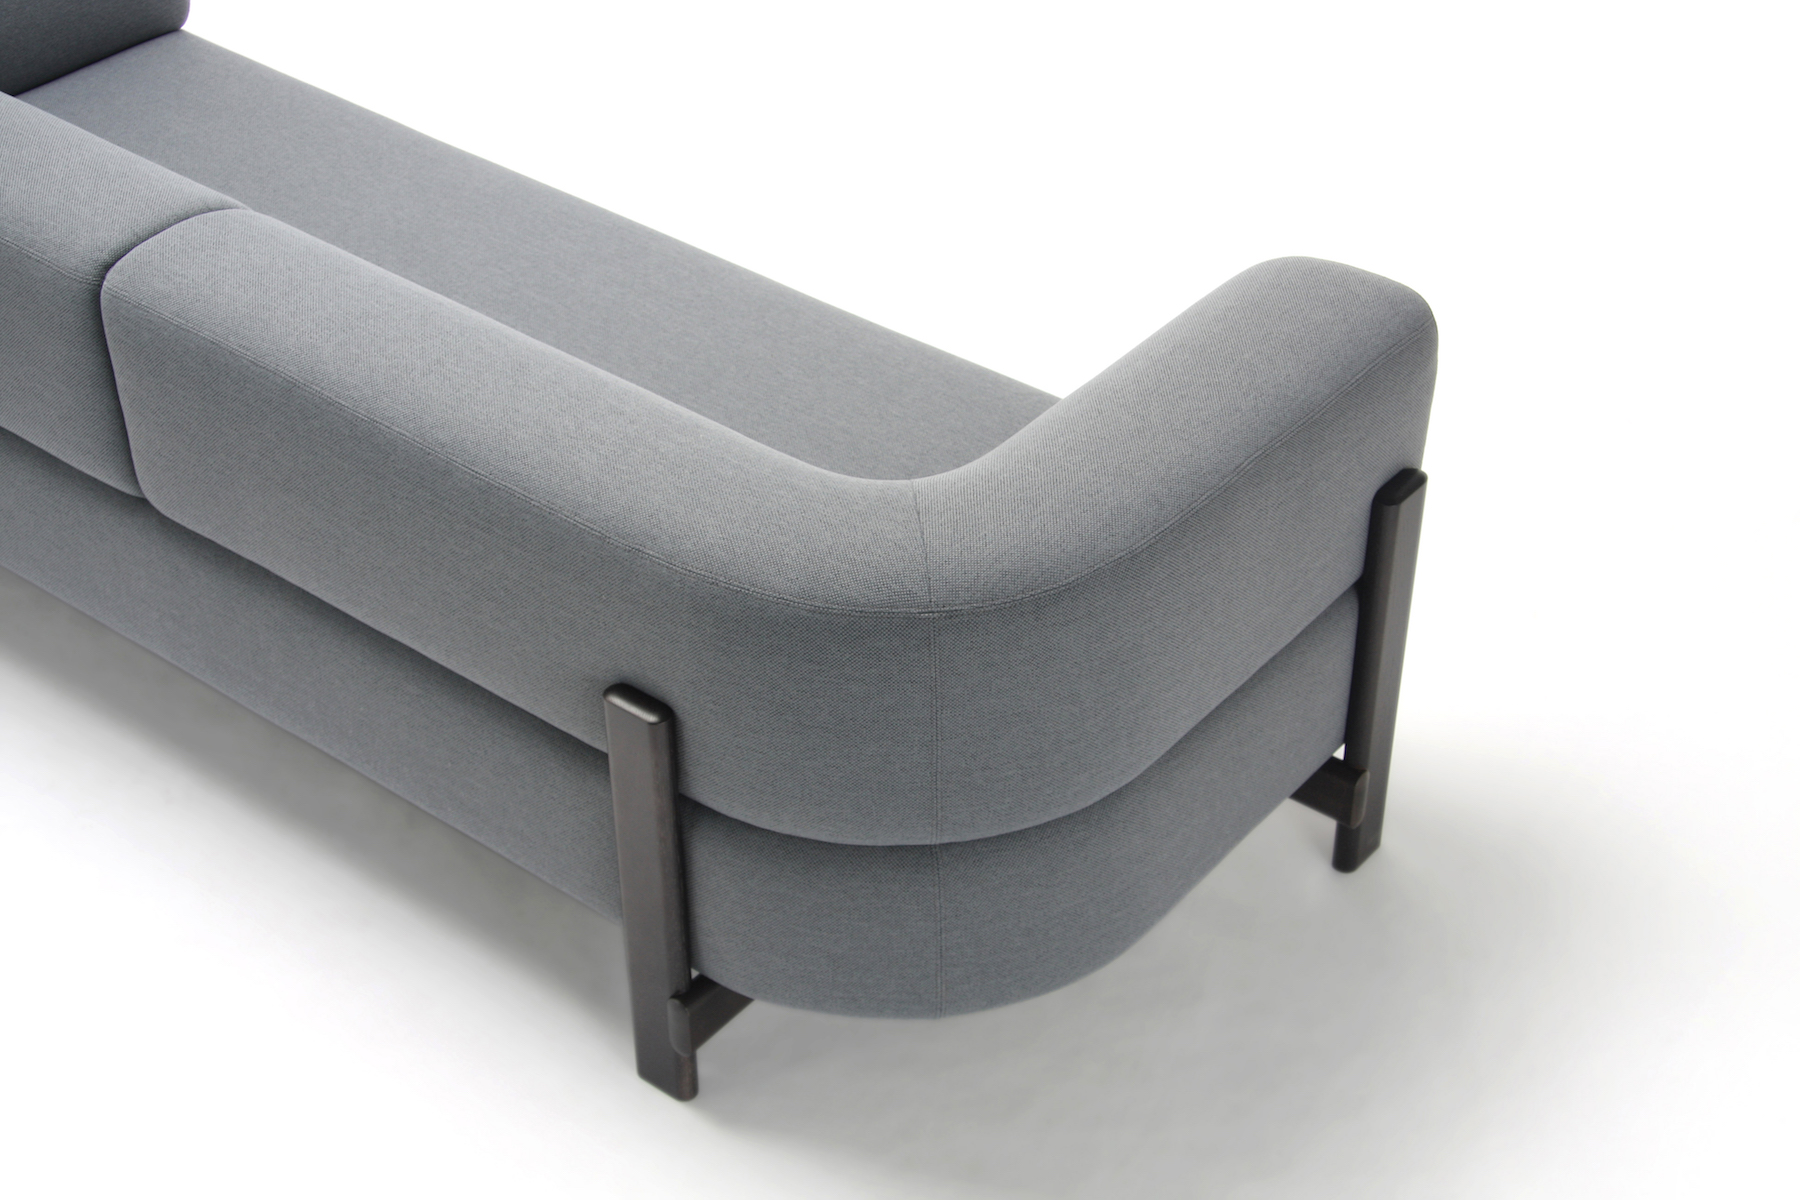 Elephant Sofa Collection by Christian Haas